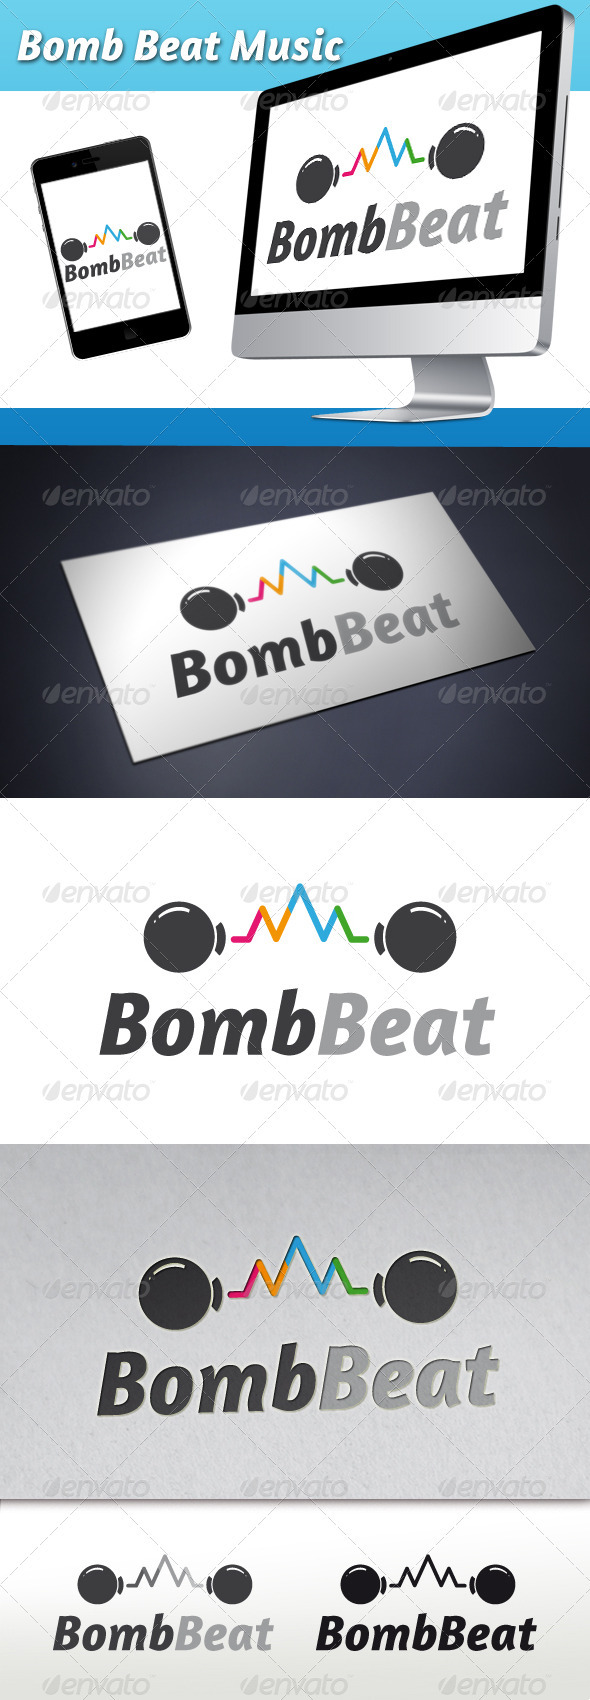 GraphicRiver Bomb Beat Music Wave Logo 3373458